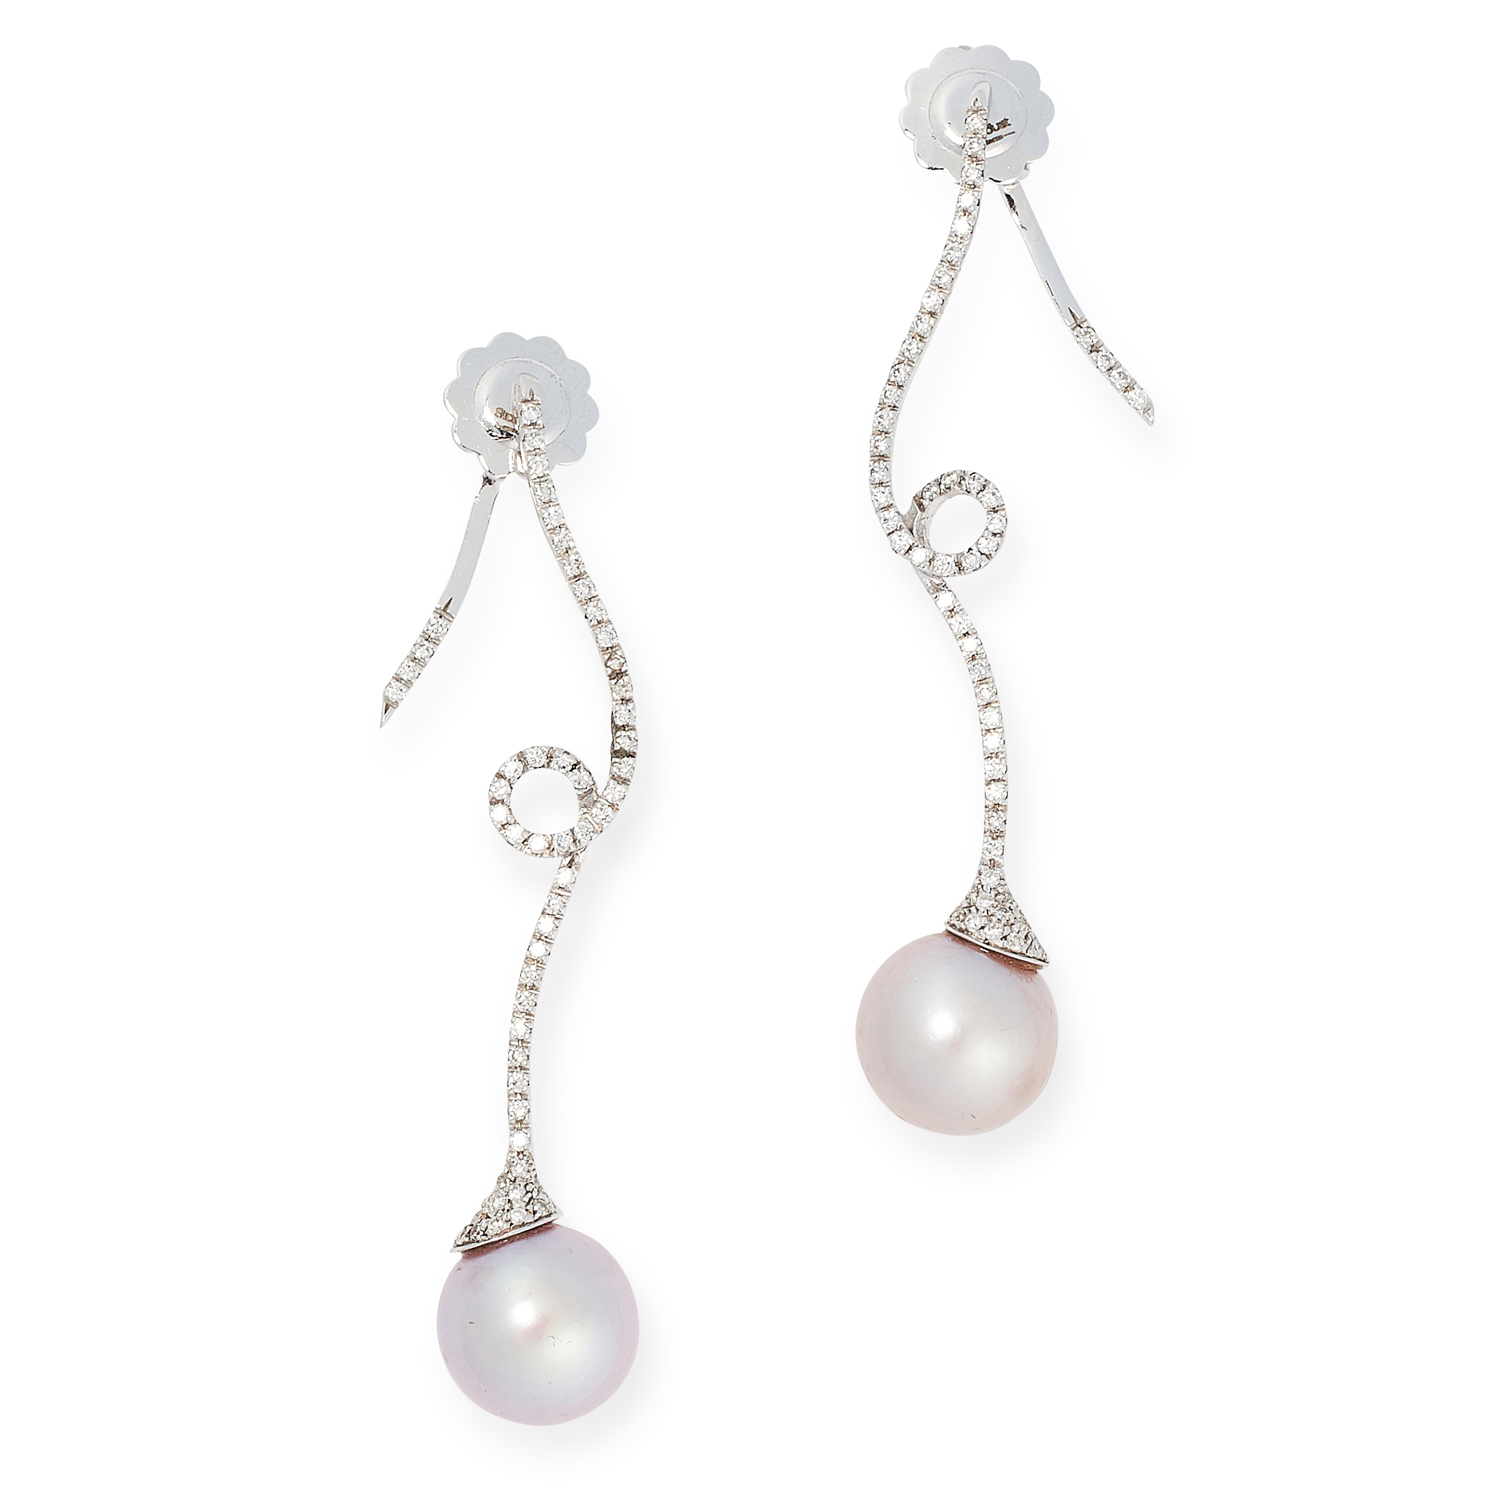 A PAIR OF DIAMOND AND PEARL EARRINGS each designed as a coiled diamond set motif, with a pink